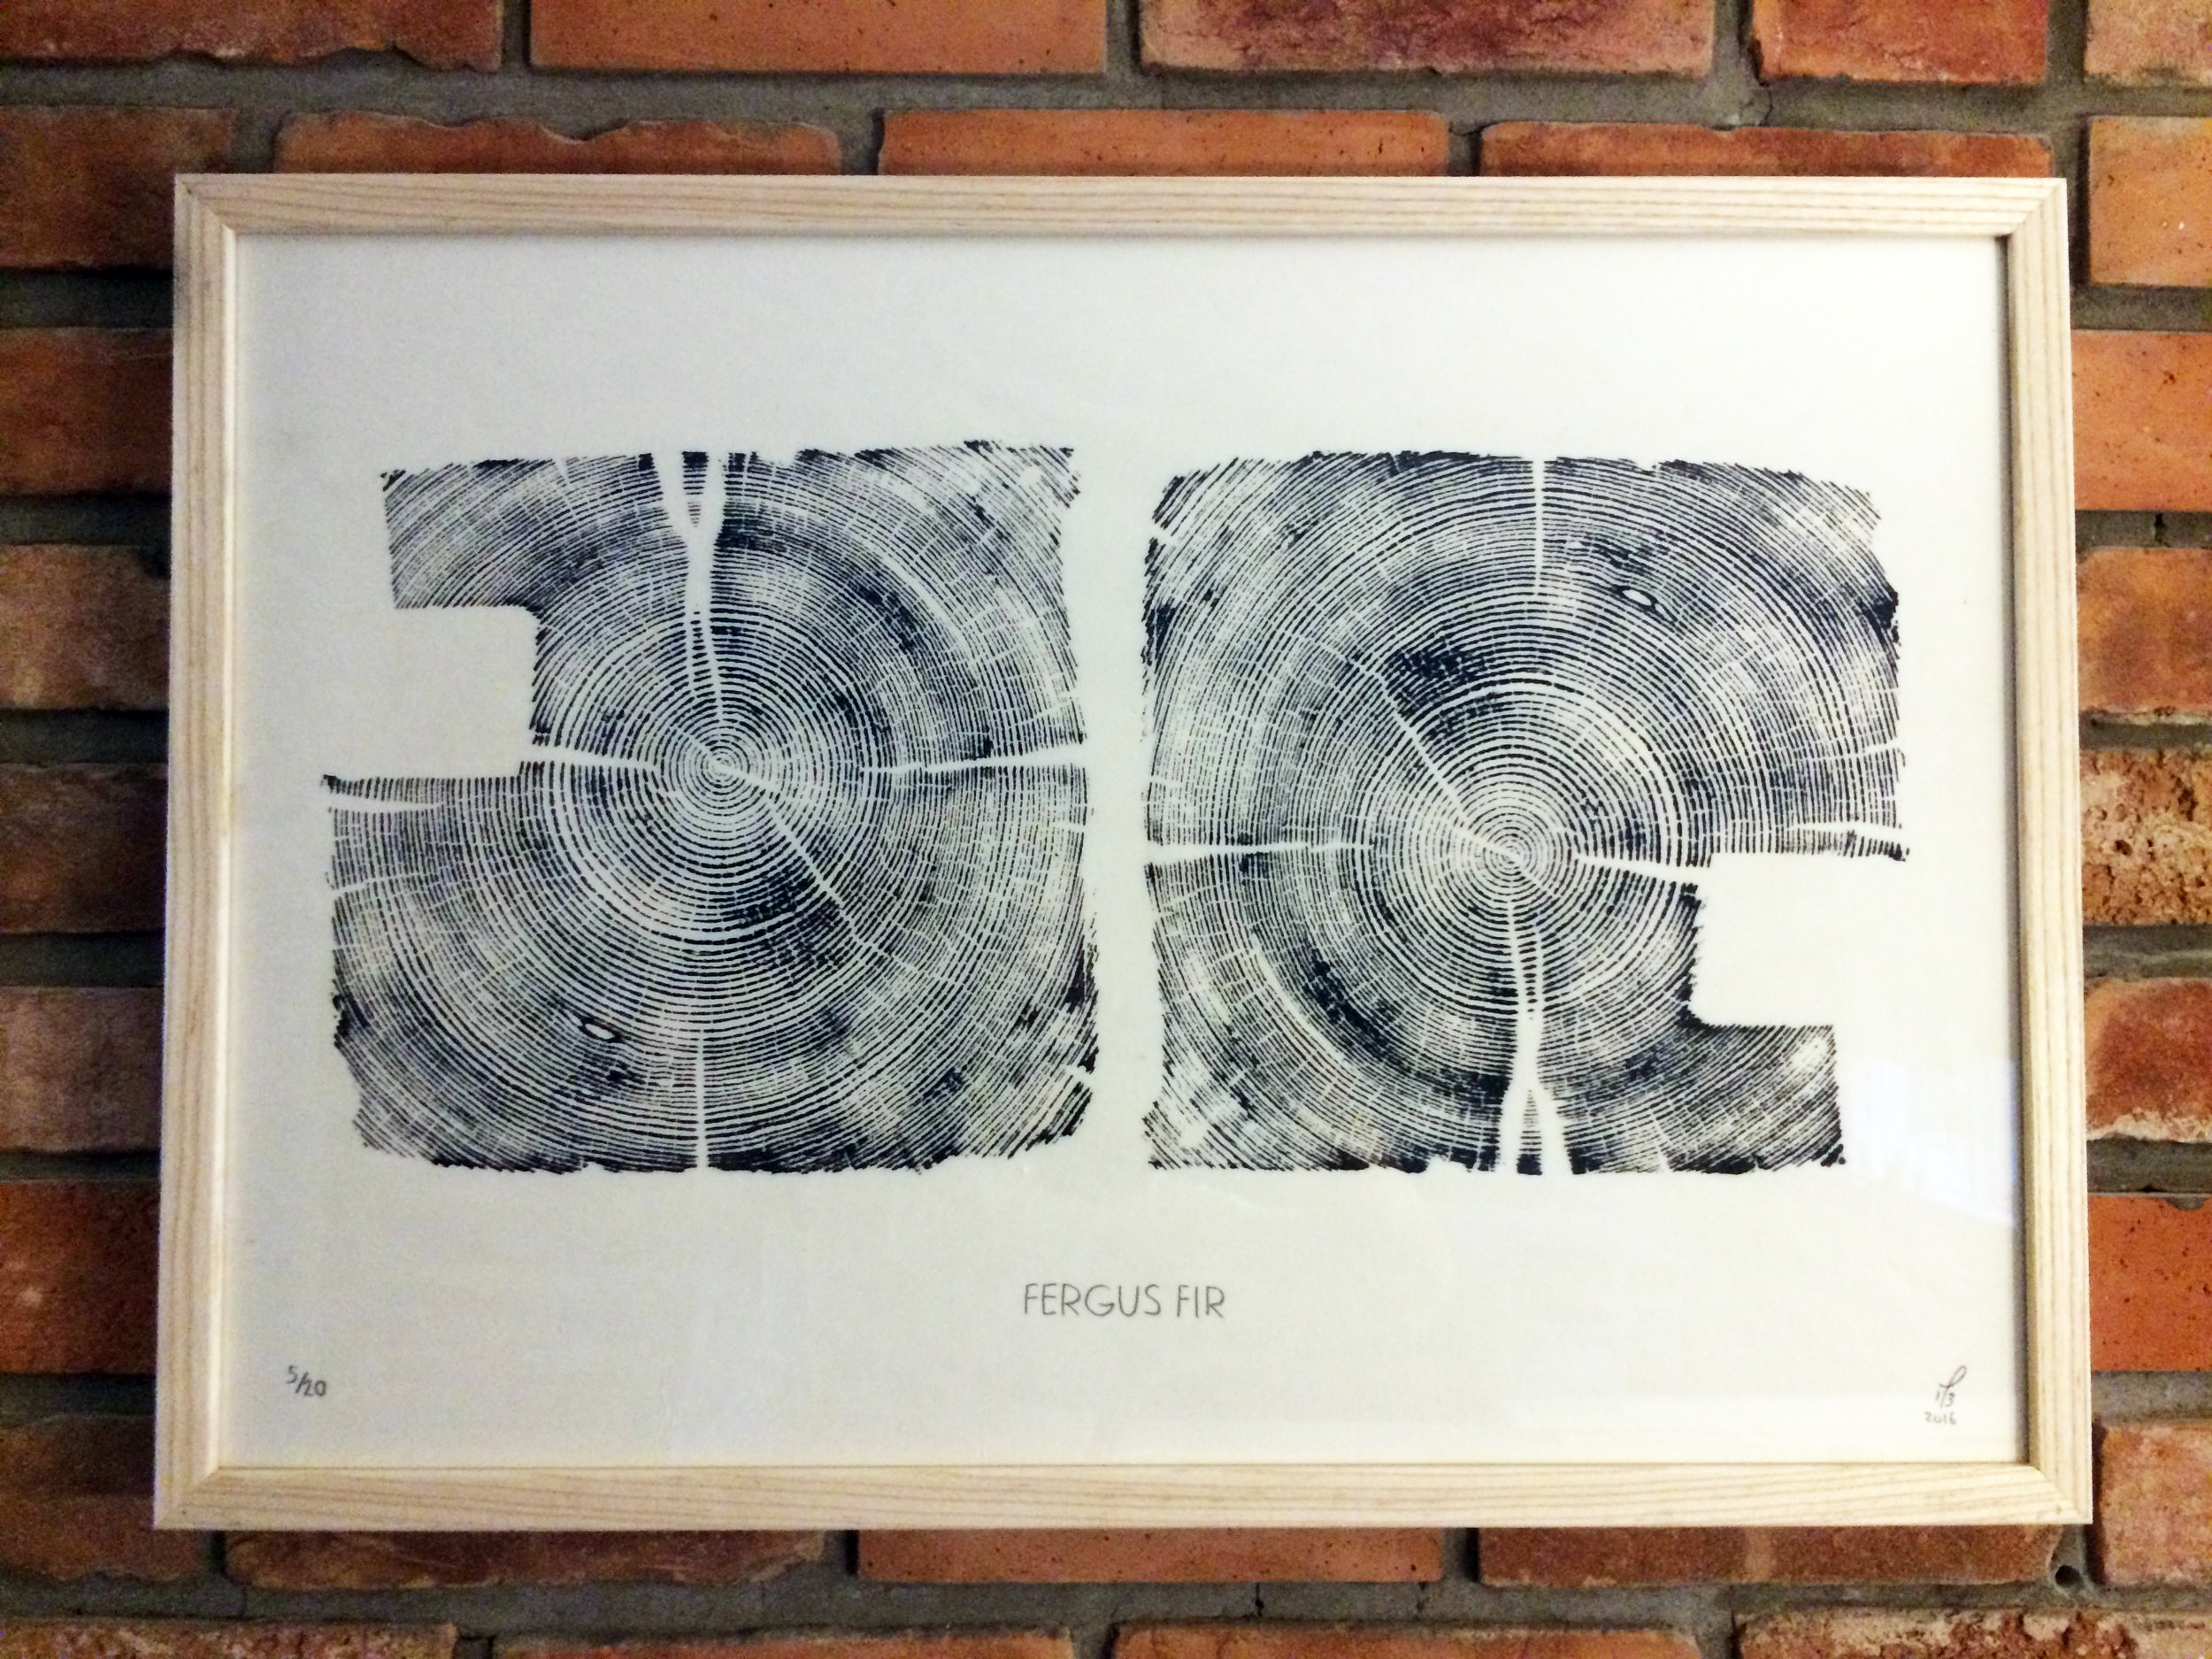 Fergus Fir  26x18in (10x10 print); Limited Edition /20 Printed on Japanese Okawara paper. This is a cross section relief of a Douglas Fir cross beam from a barn I took down north of Fergus, Ontario.   SOLD OUT!